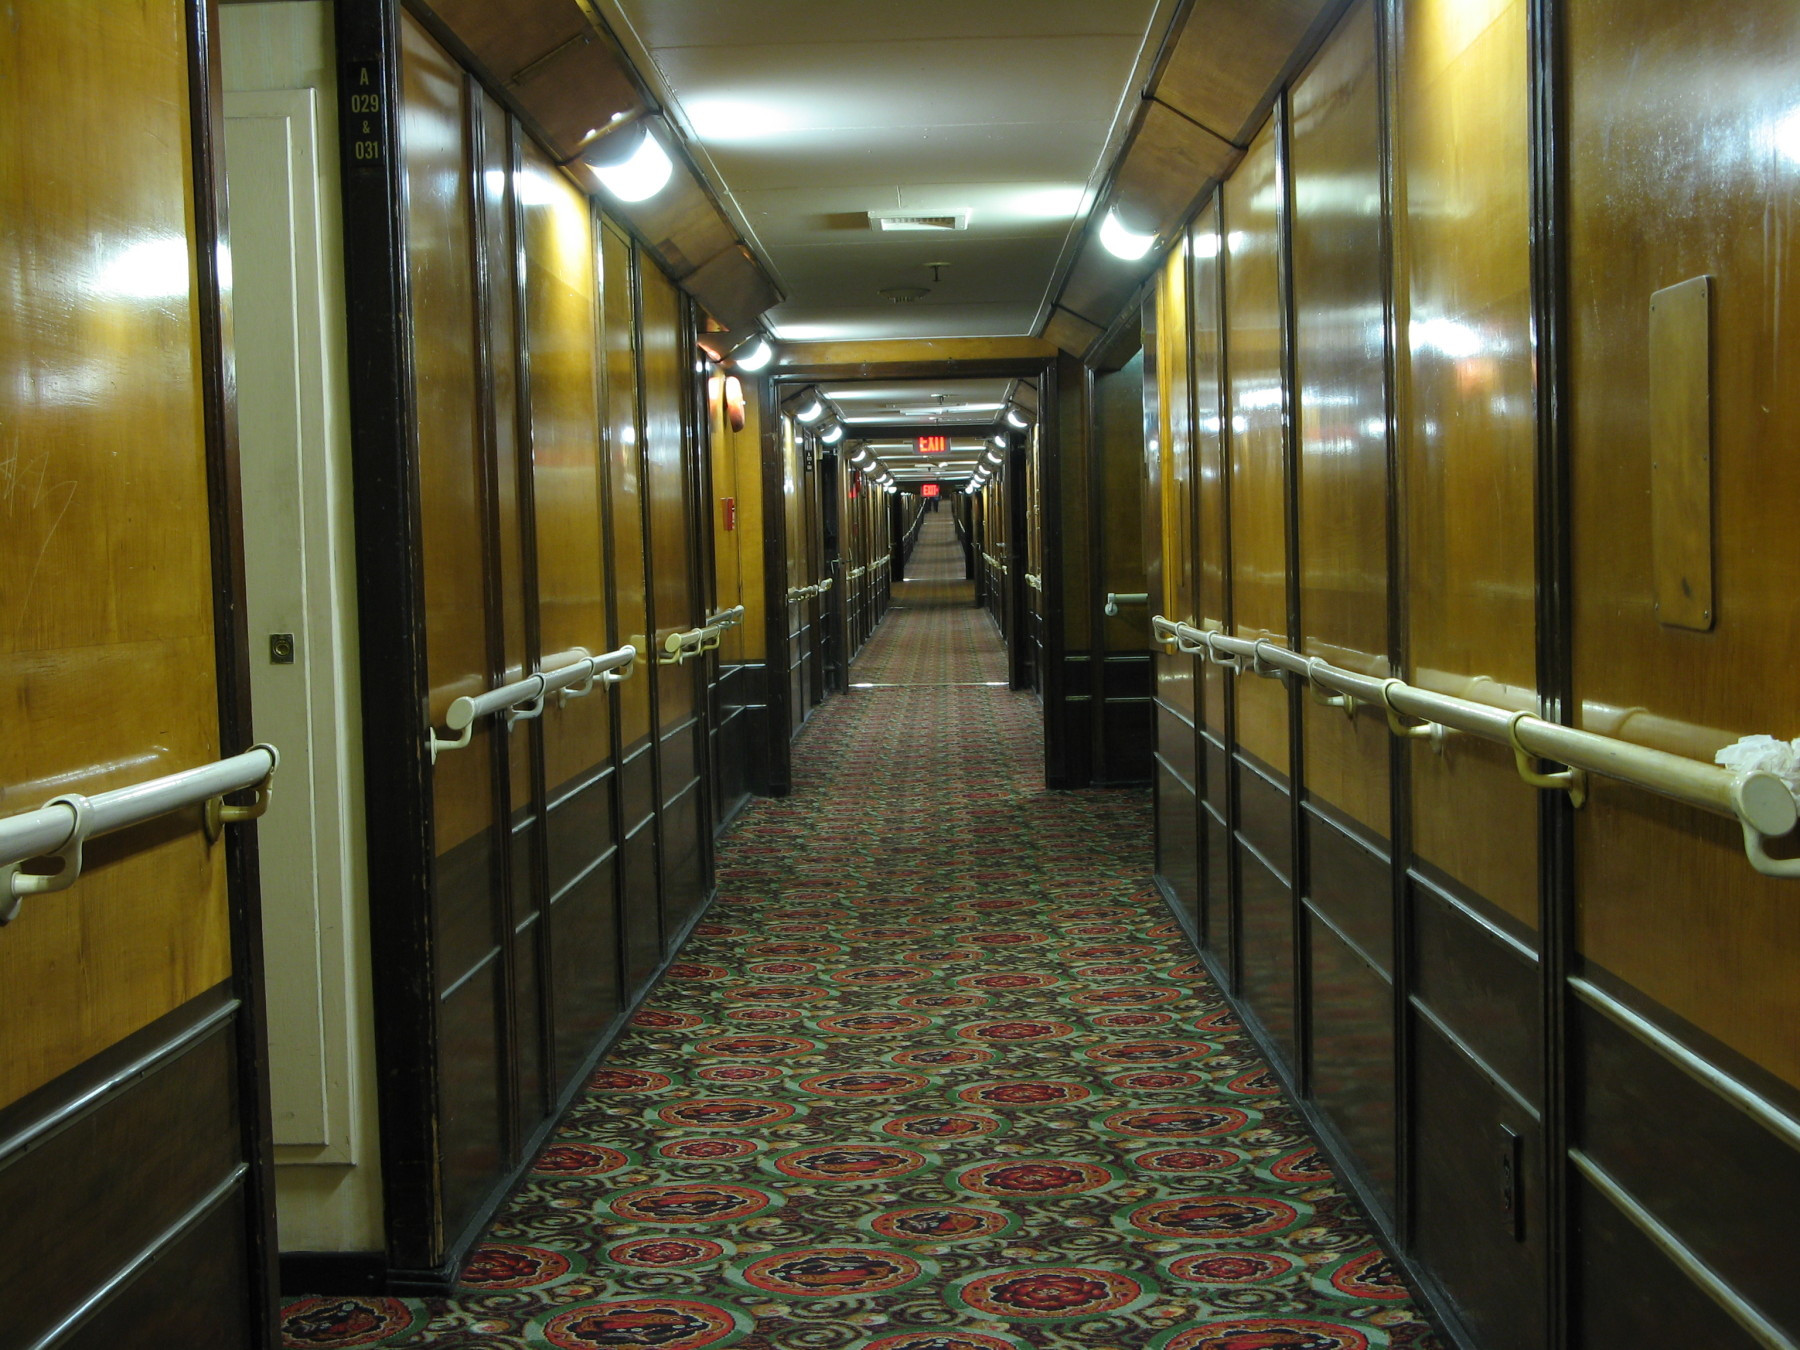 20081106015730!Queen_Mary_Hotel_Cabin_Corridor